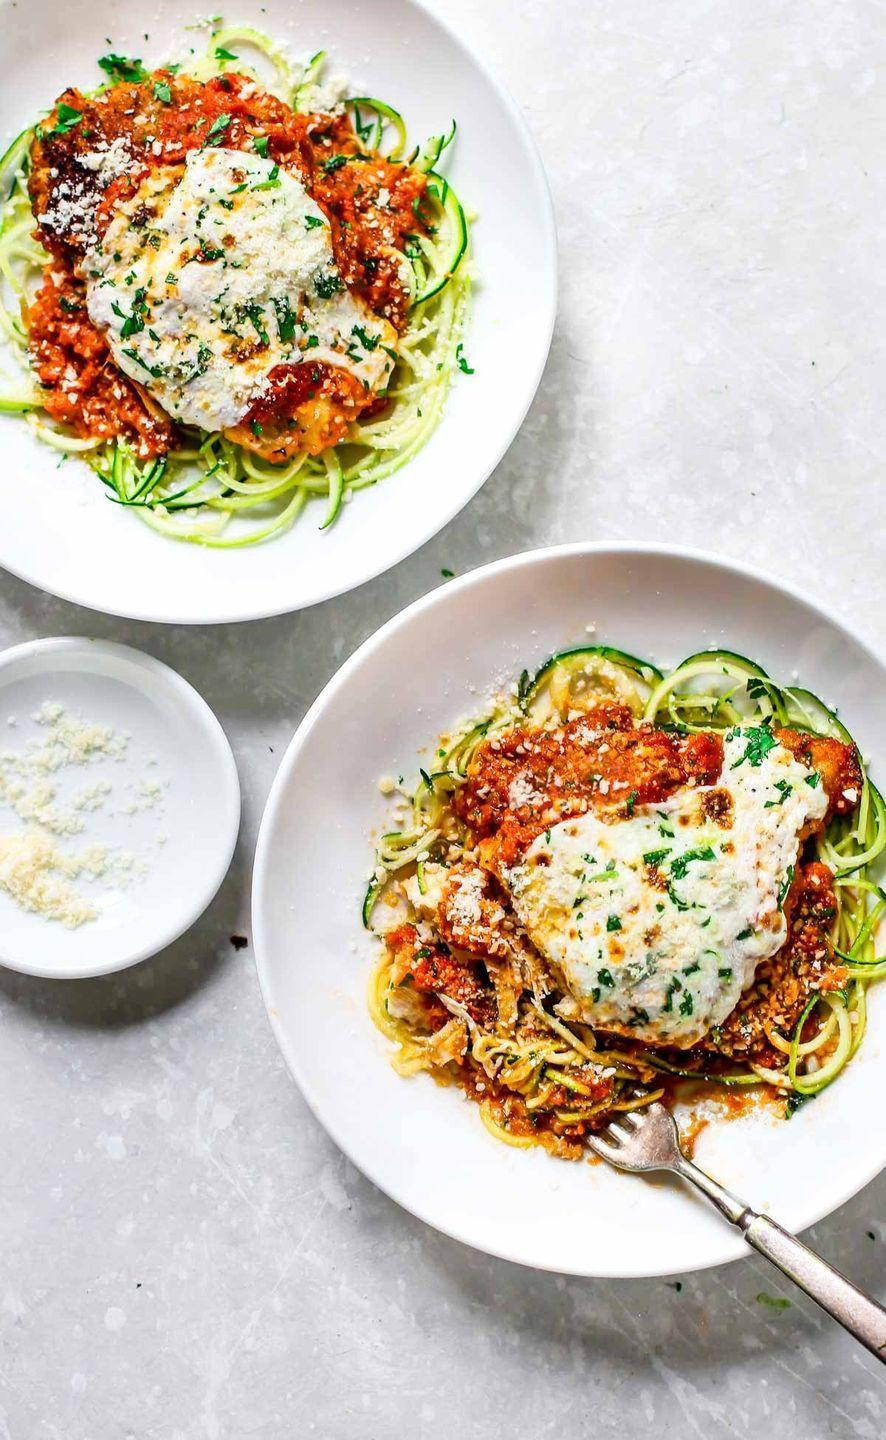 """<p>Here's some cheesy, saucy, crispy deliciousness you can feel good about. </p><p><a href=""""http://pinchofyum.com/20-minute-healthy-chicken-parmesan"""" rel=""""nofollow noopener"""" target=""""_blank"""" data-ylk=""""slk:Get the recipe from Pinch of Yum »"""" class=""""link rapid-noclick-resp""""><em>Get the recipe from Pinch of Yum »</em></a></p>"""